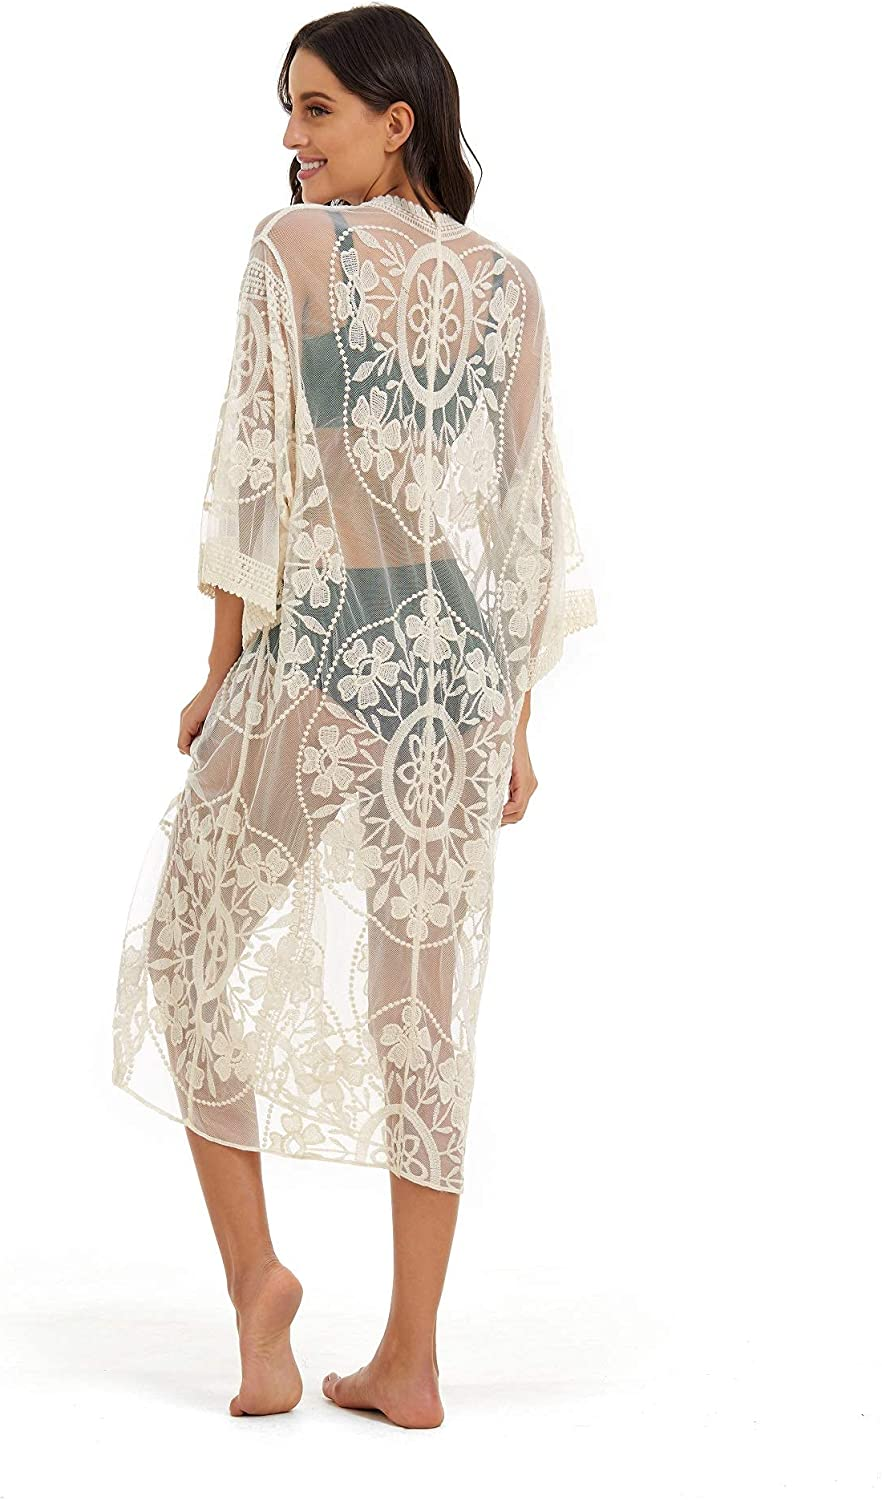 marysgift Cover Ups for Women Crochet Embroidered Lace Kimono Cardigan Long Sheer Maxi Dress Size US 4-18